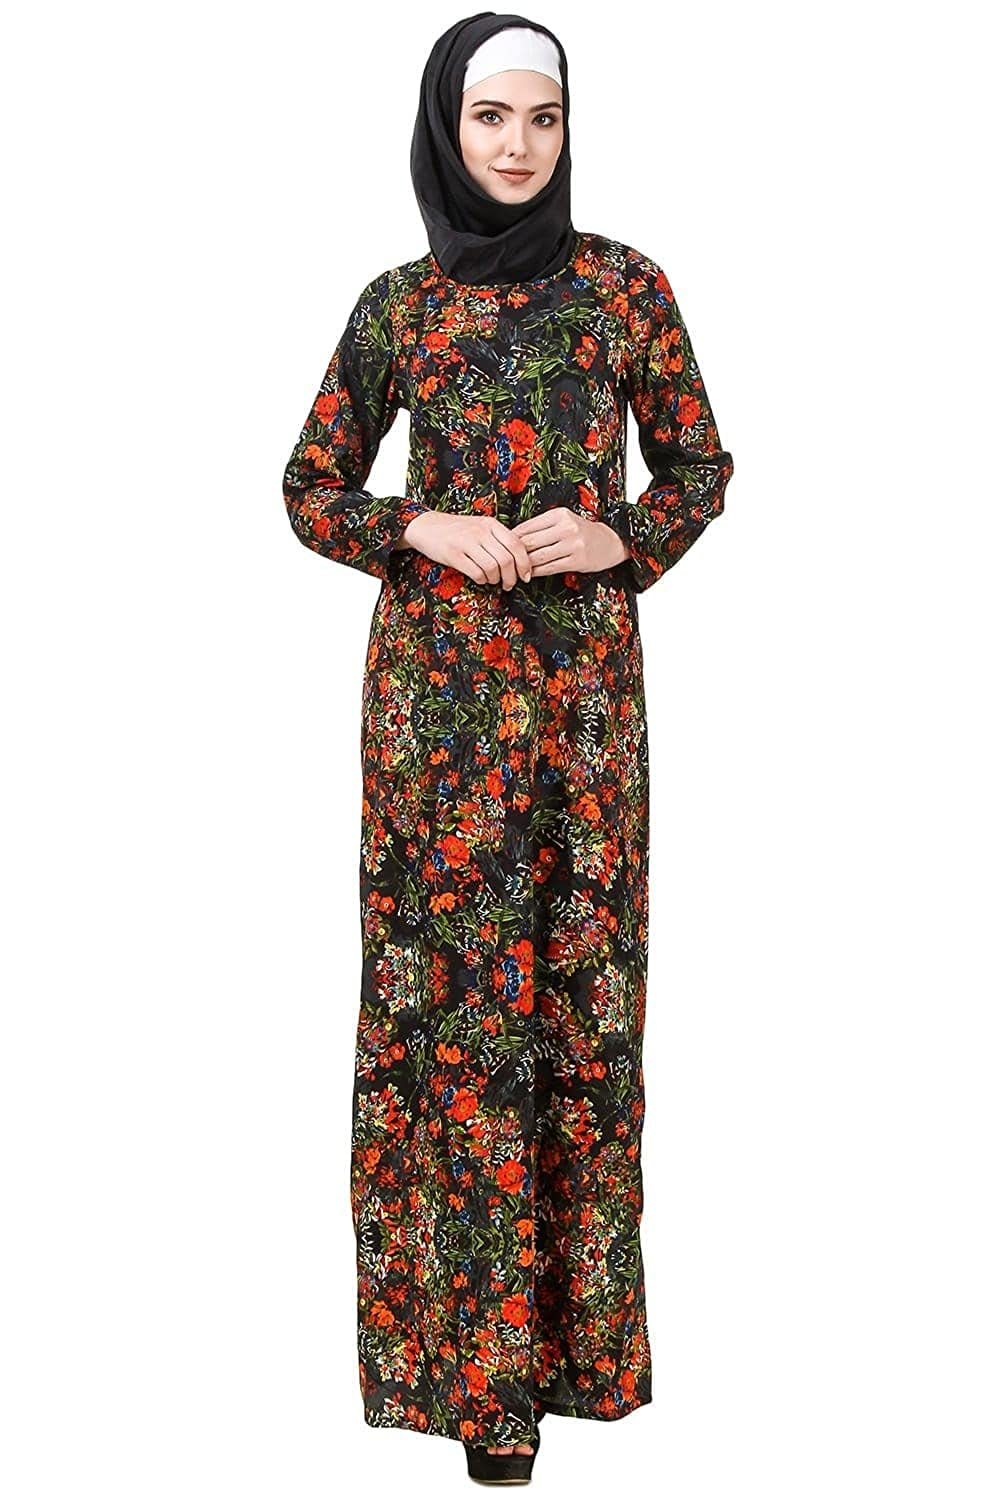 MyBatua Printed Crepe Abaya, Casual and Formal Wear Dress Islamic Clothing